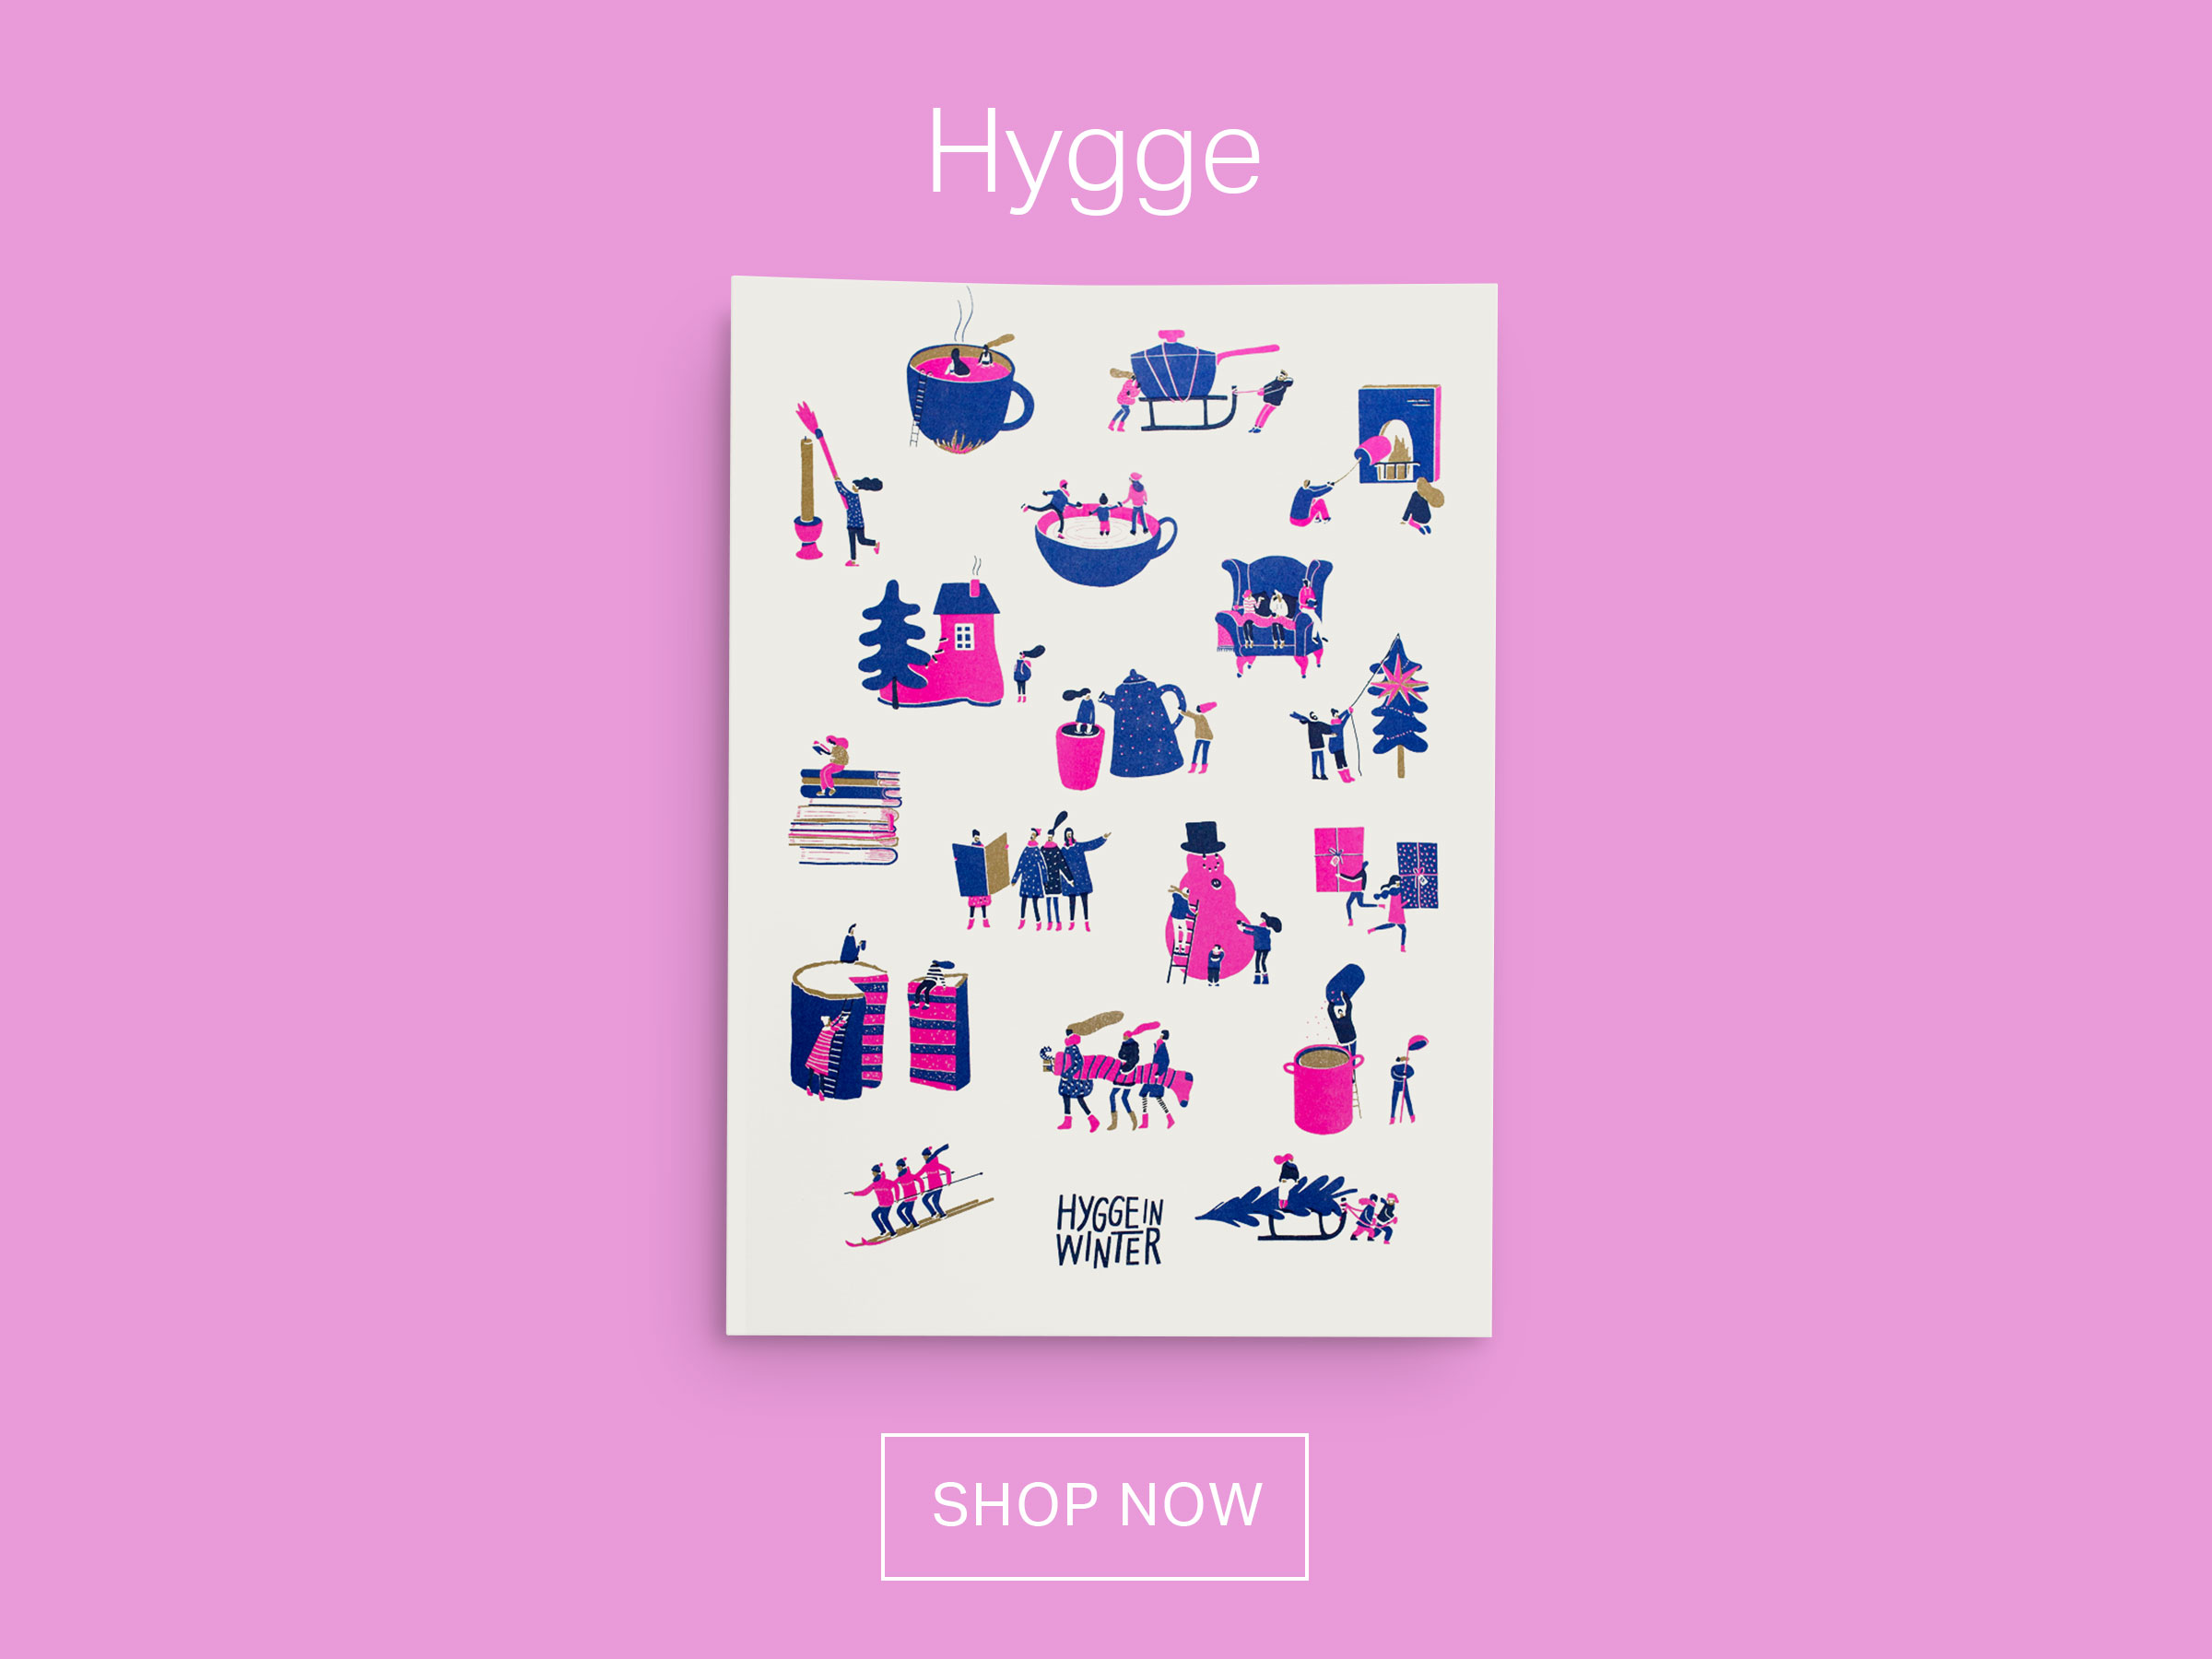 hygge-collection.jpg